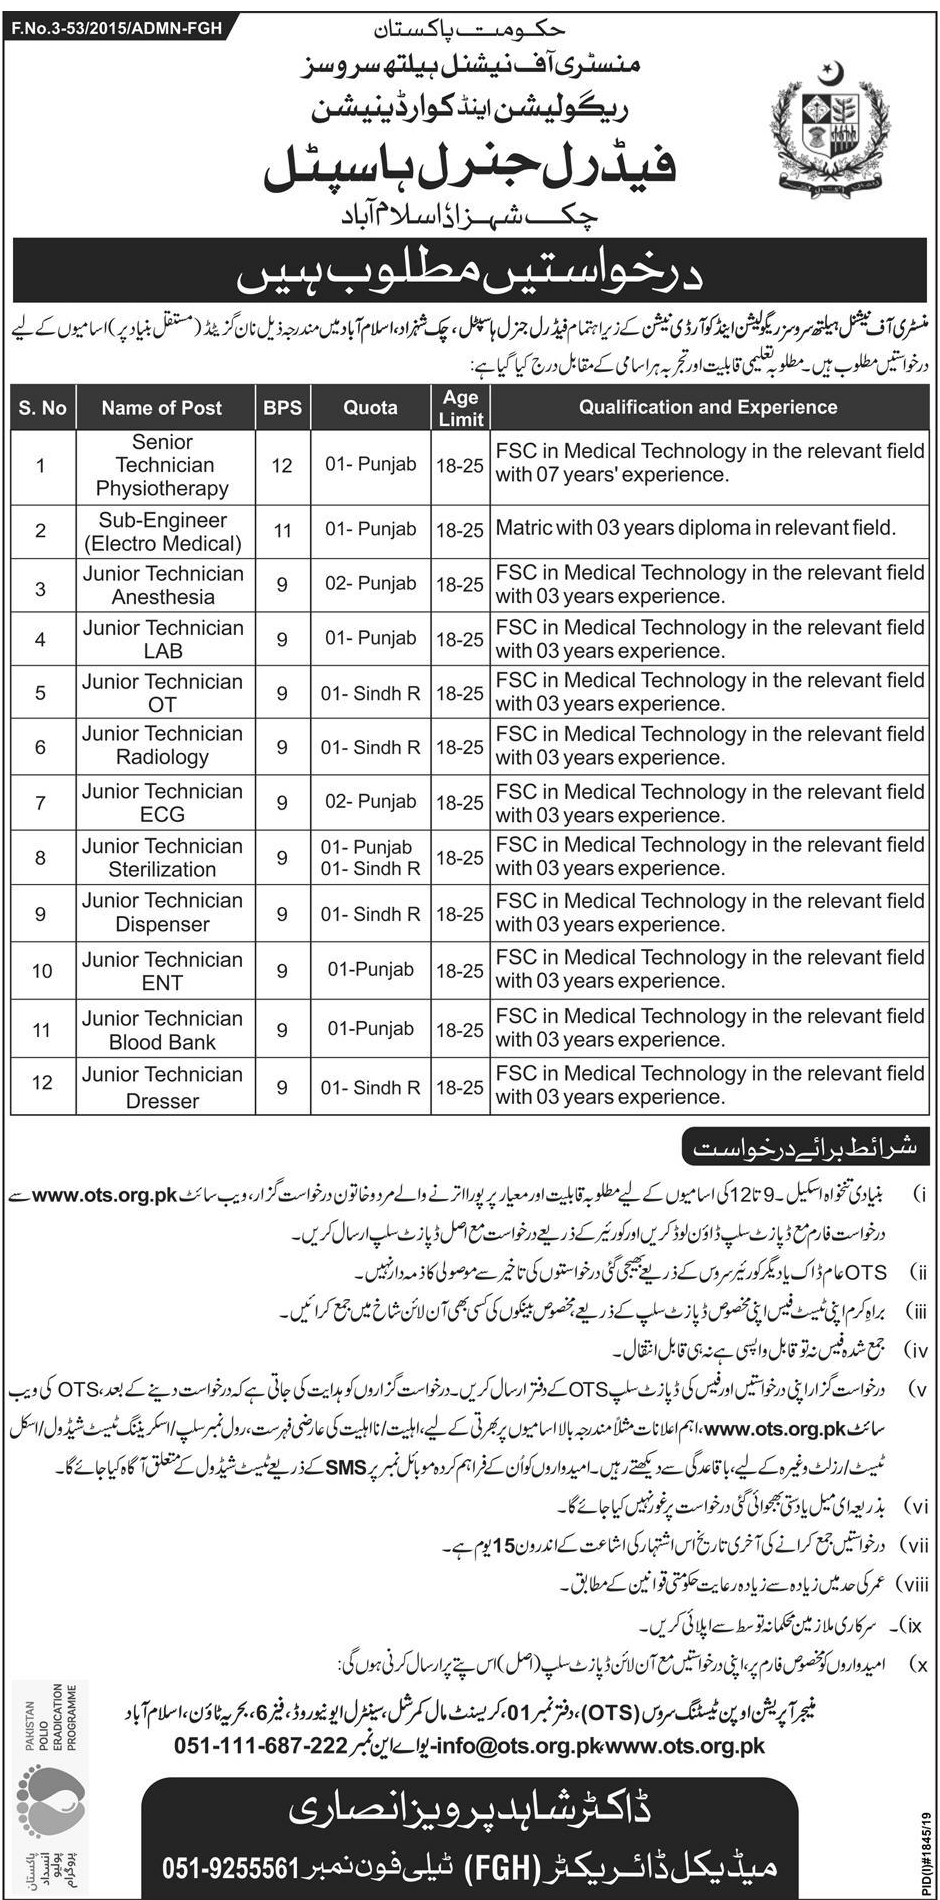 NHSRC Federal General Hospital Chak Shahzad Jobs 2019 OTS Application Form Roll No Slip